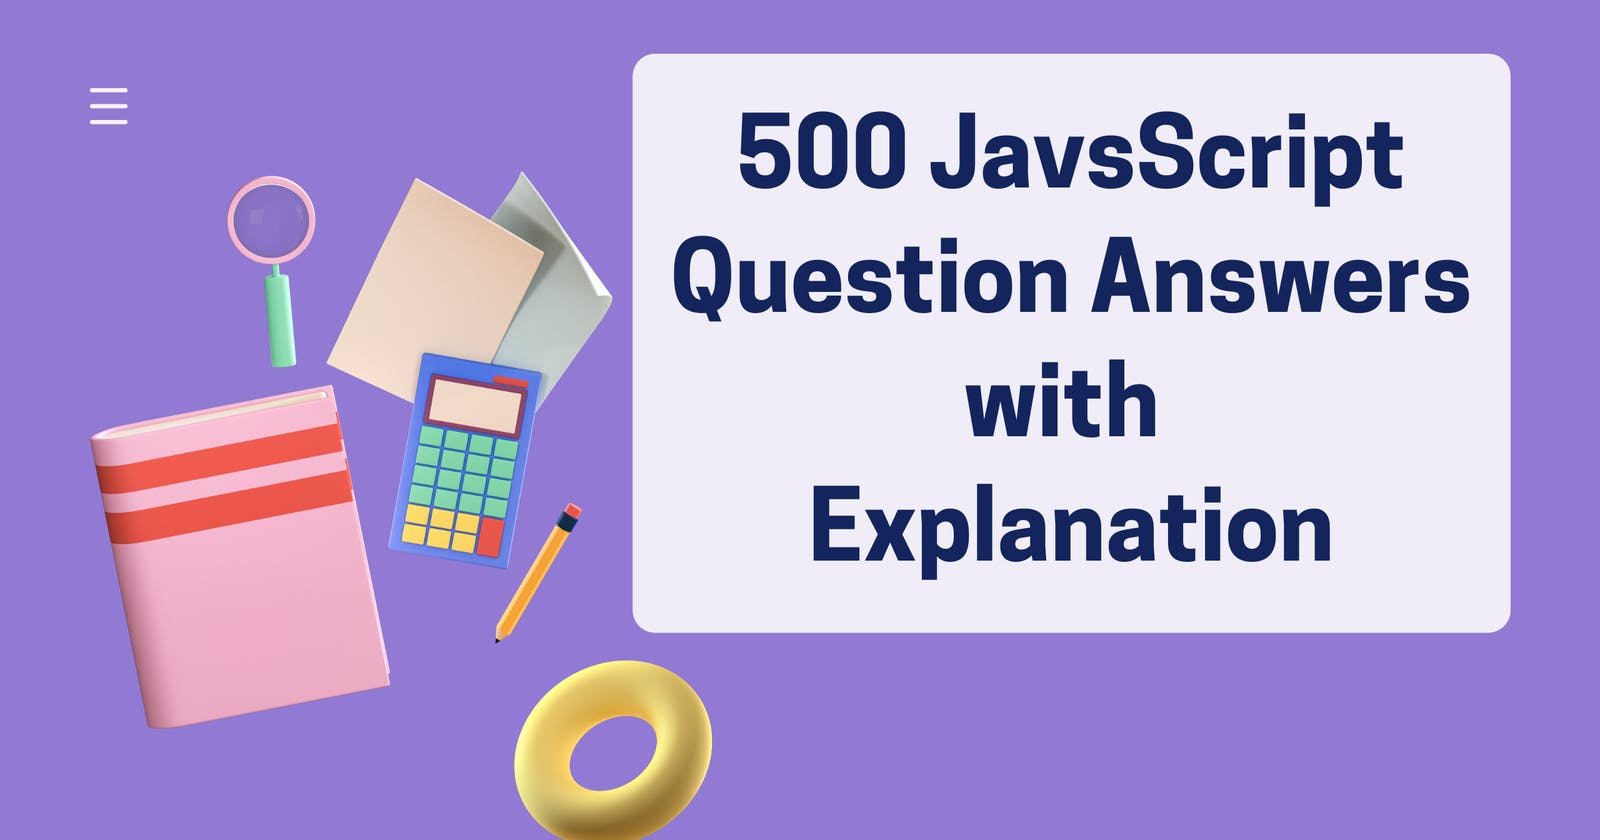 Part-5 : 500 JavaScript Important Questions with Answers and Explanation